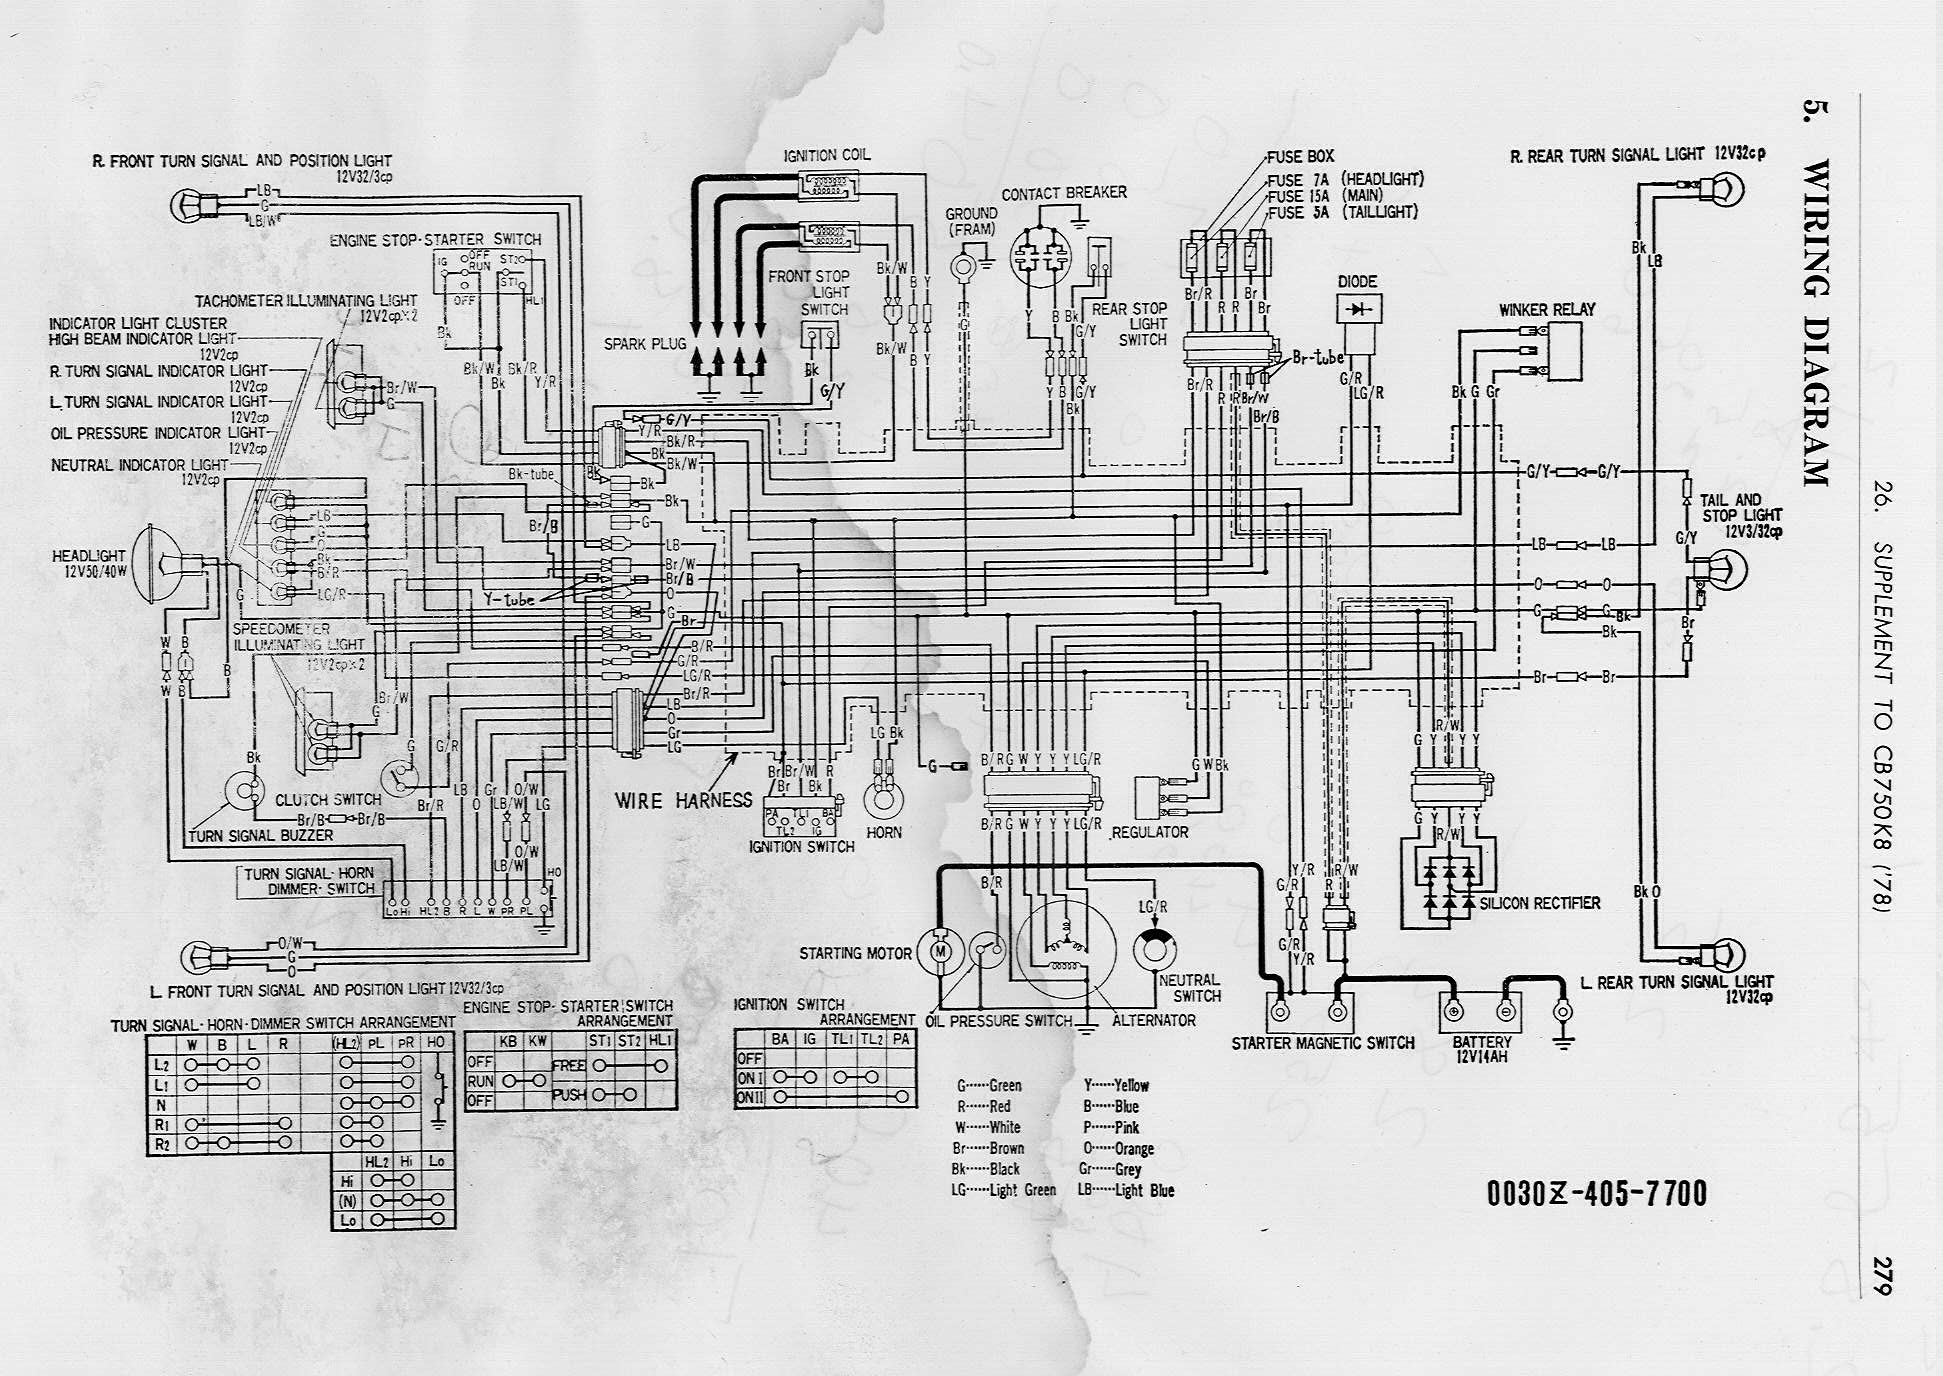 Diagram  Honda Nighthawk 750 Wiring Diagram Full Version Hd Quality Wiring Diagram